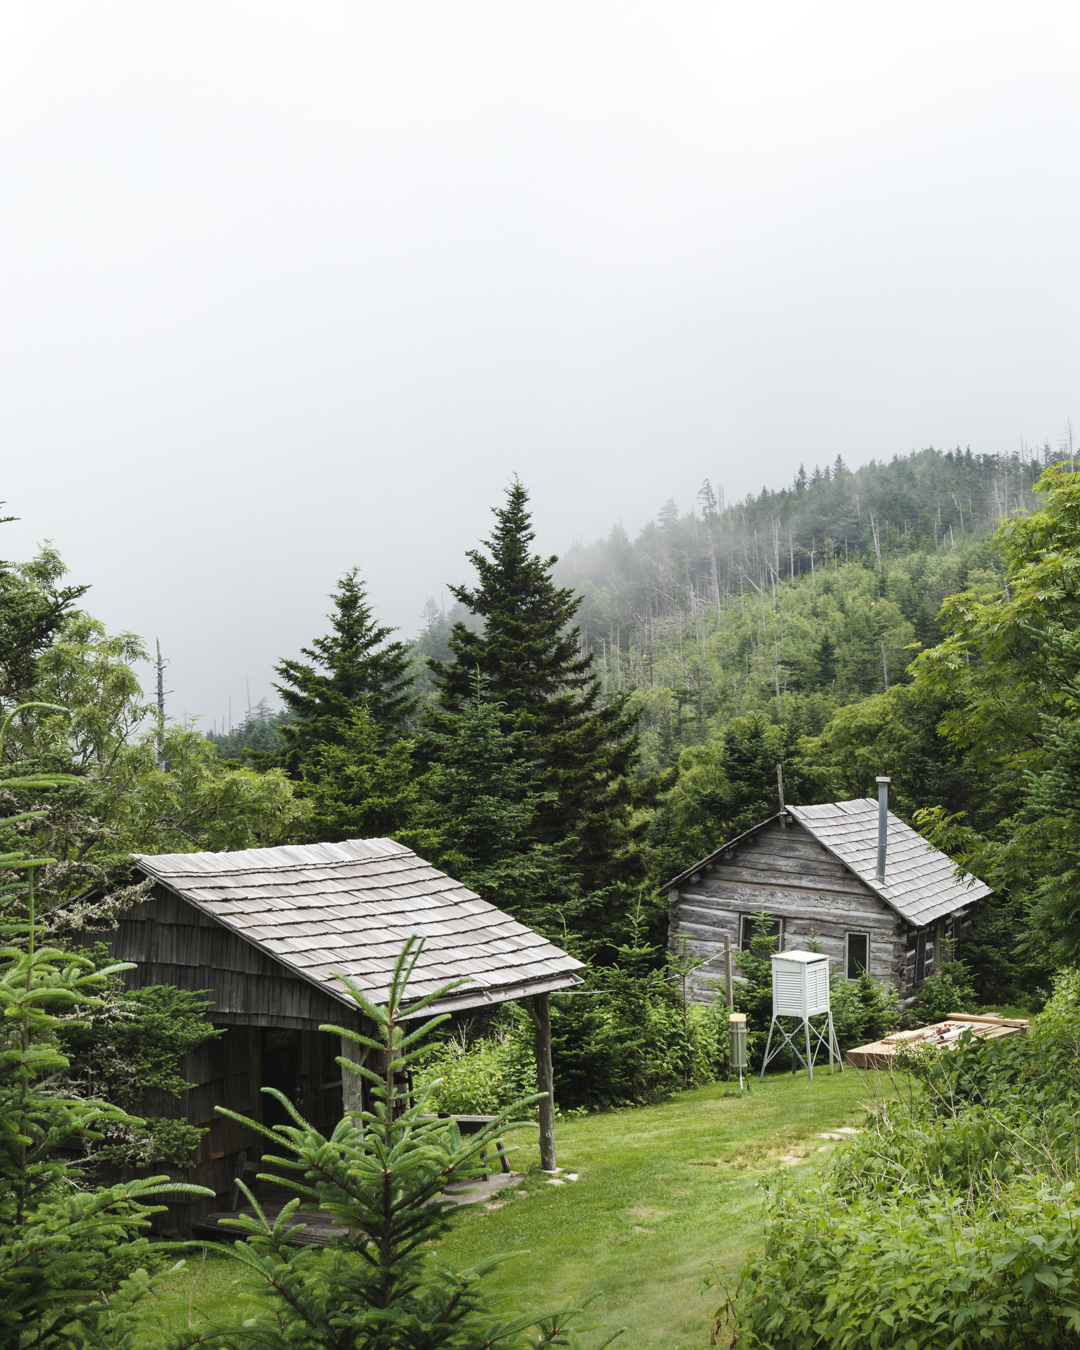 This image is slightly overexposed to blow out the sky. This adds to the moody atmosphere of the cabins